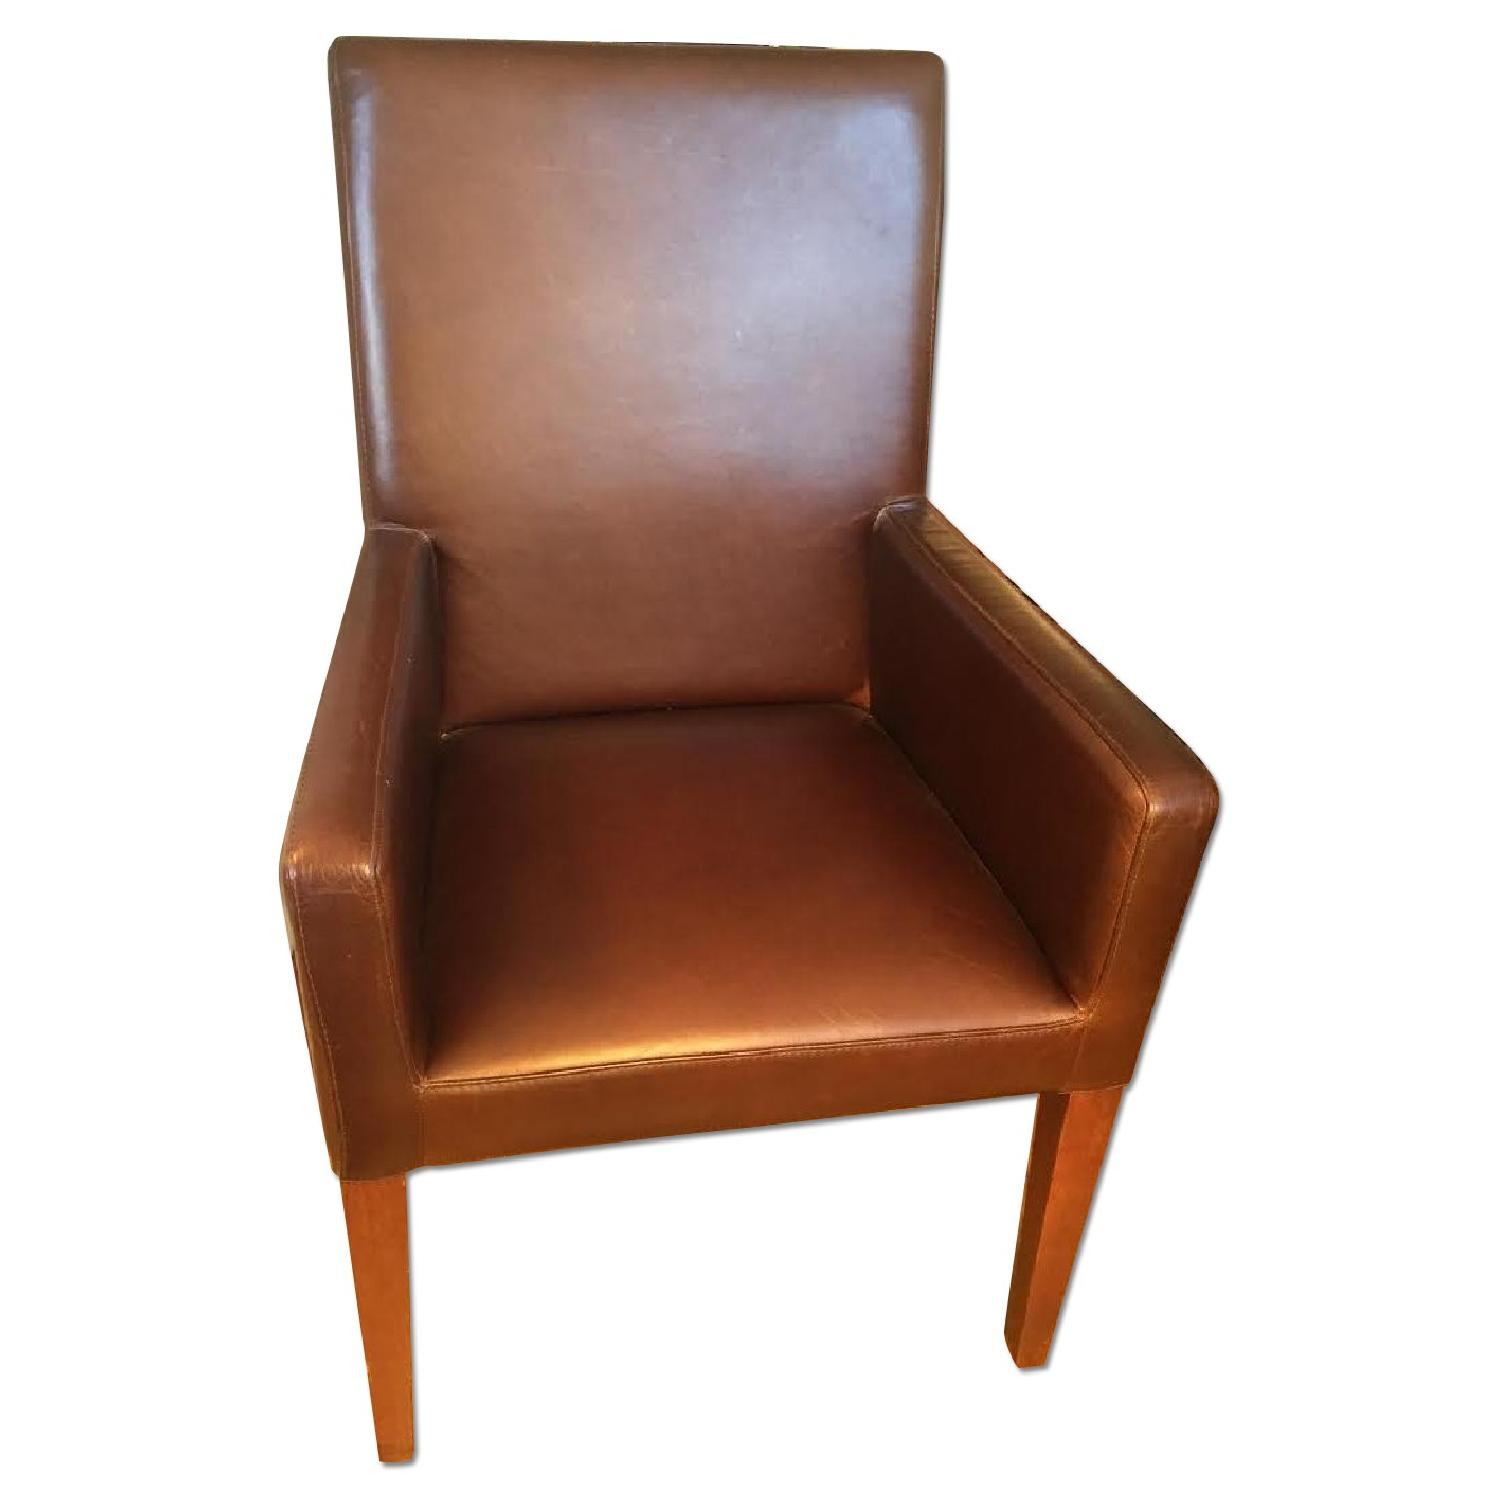 Leather Dining Room Chairs - image-0